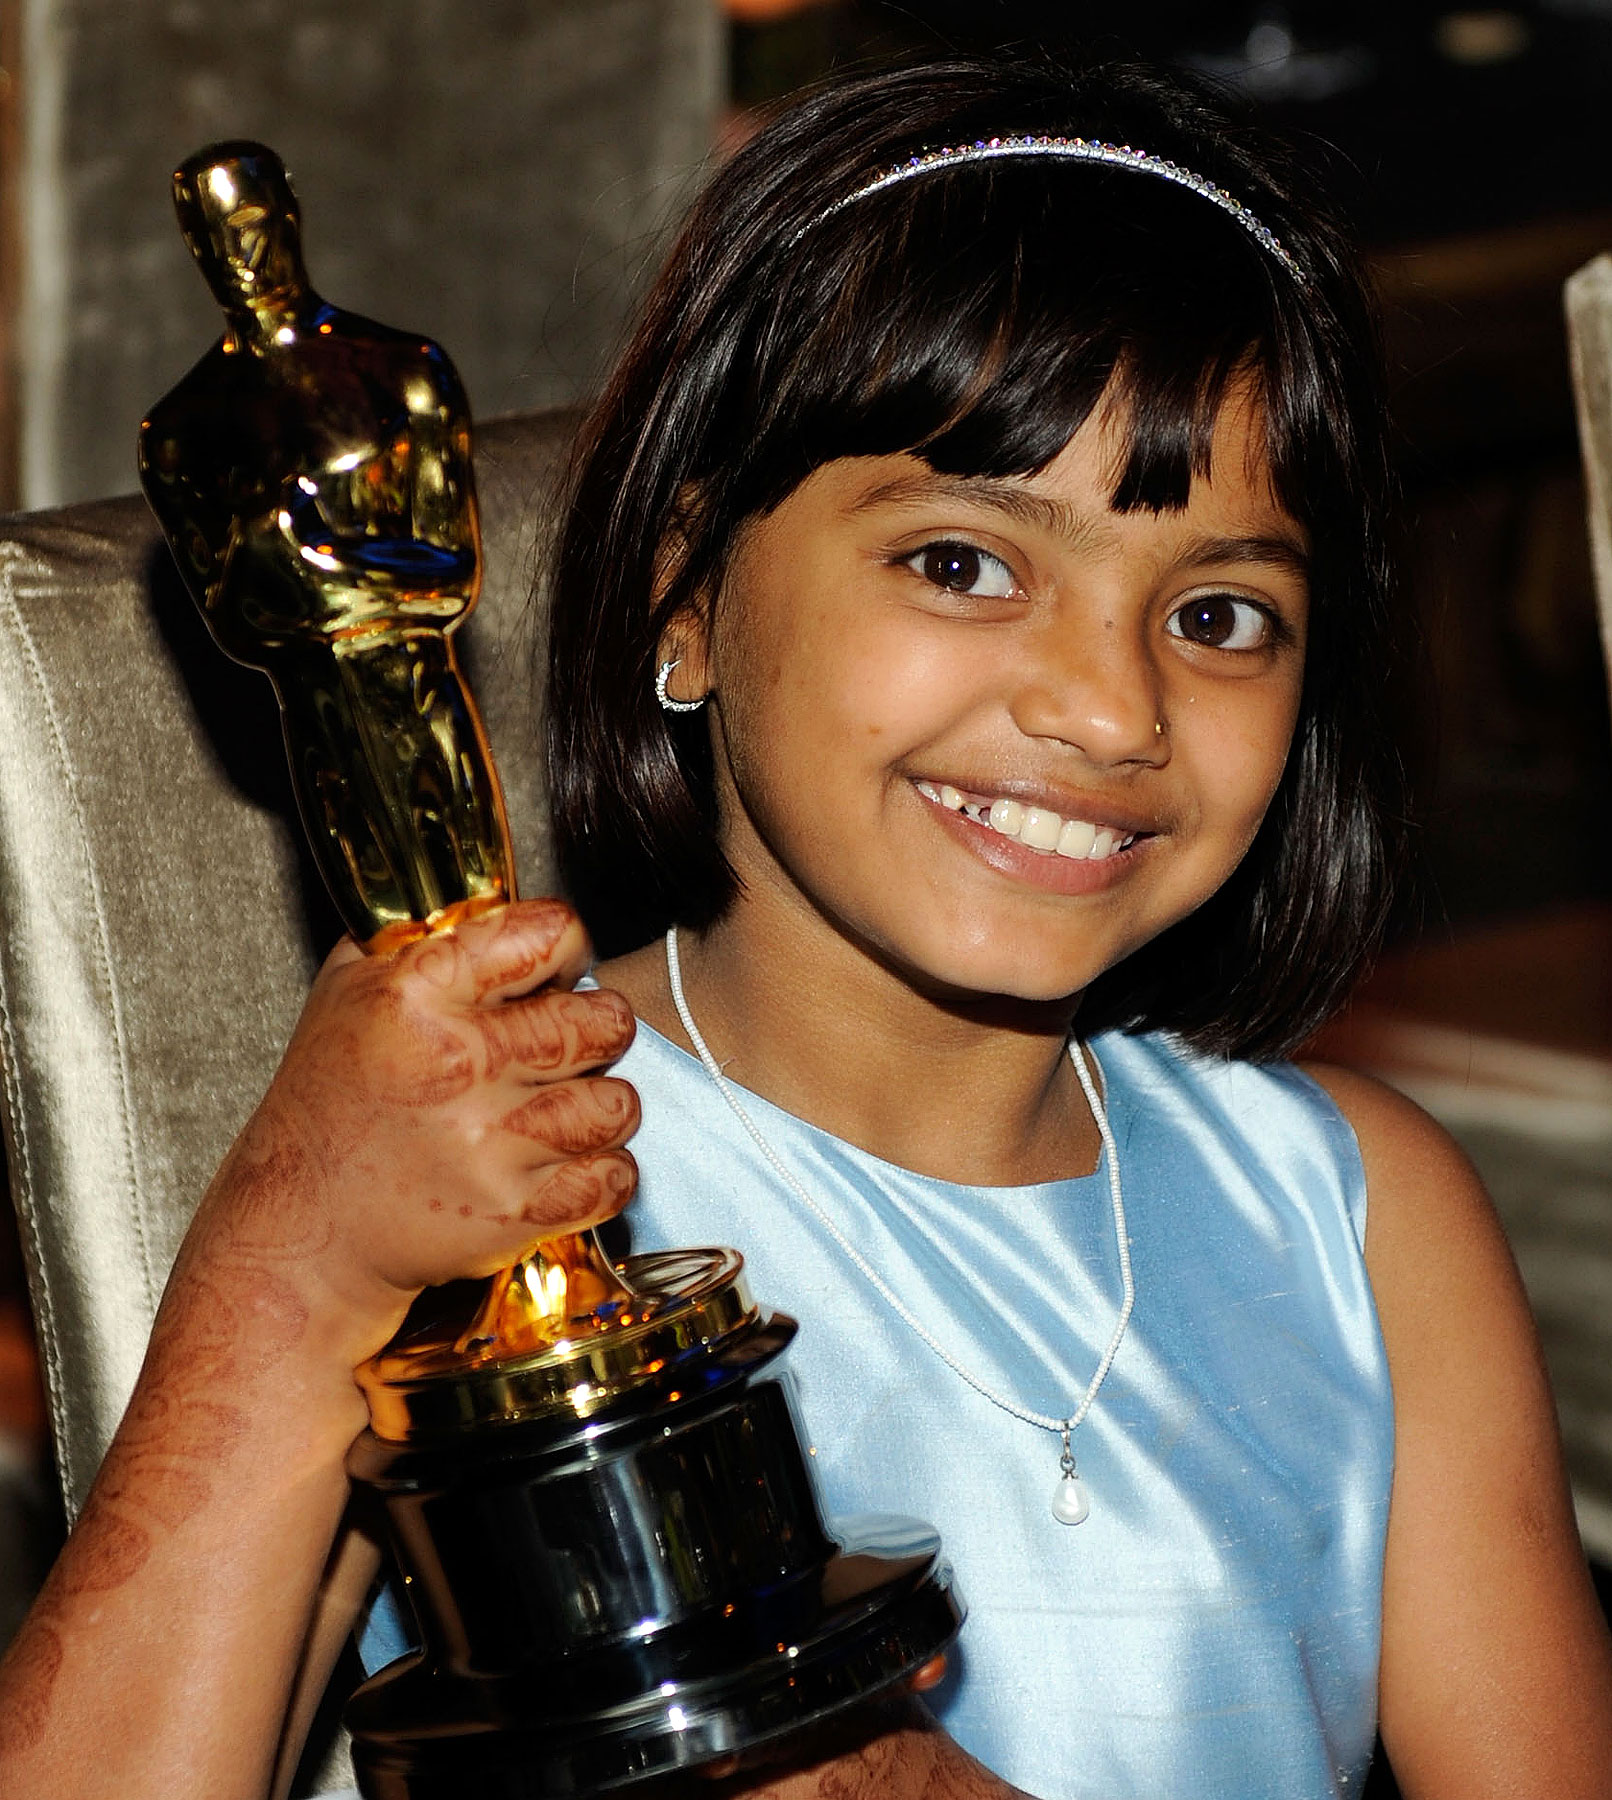 Rubiana Ali: Oscars' New Star, the Queen of Cute